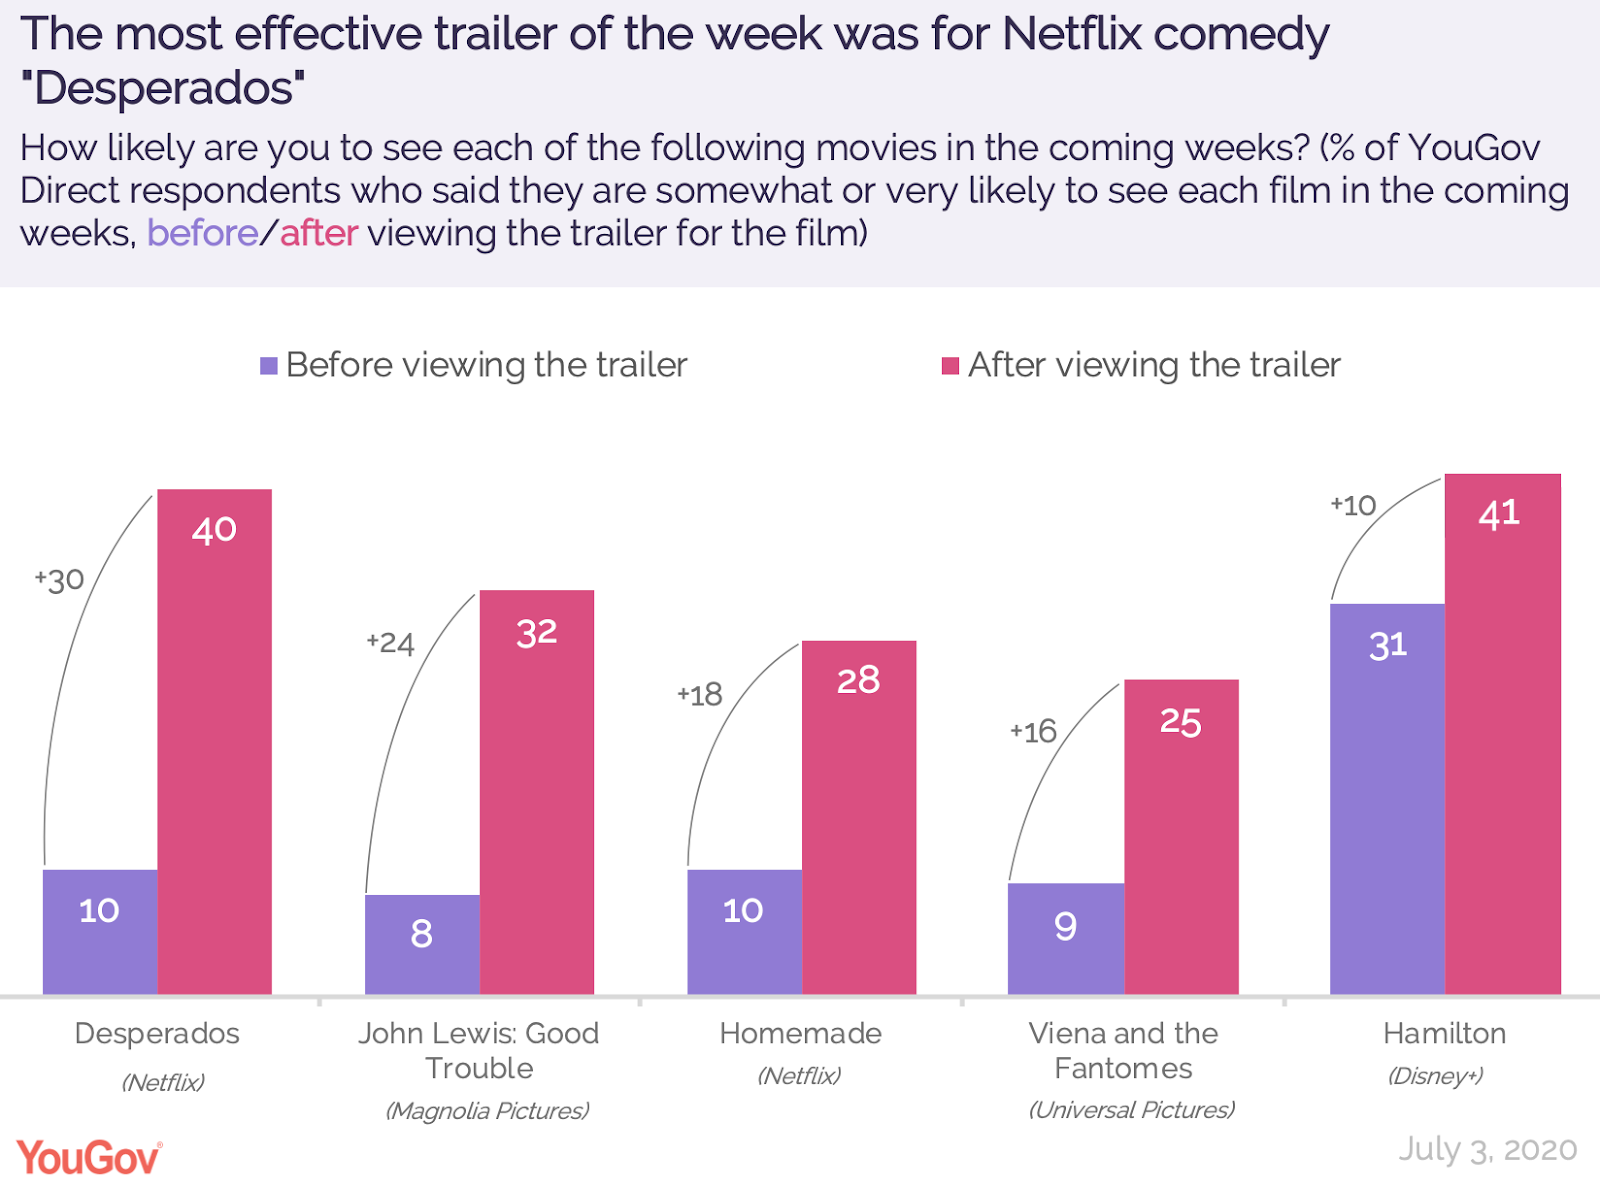 The Trailer For Hamilton Did Not Throw Away Its Shot Yougov